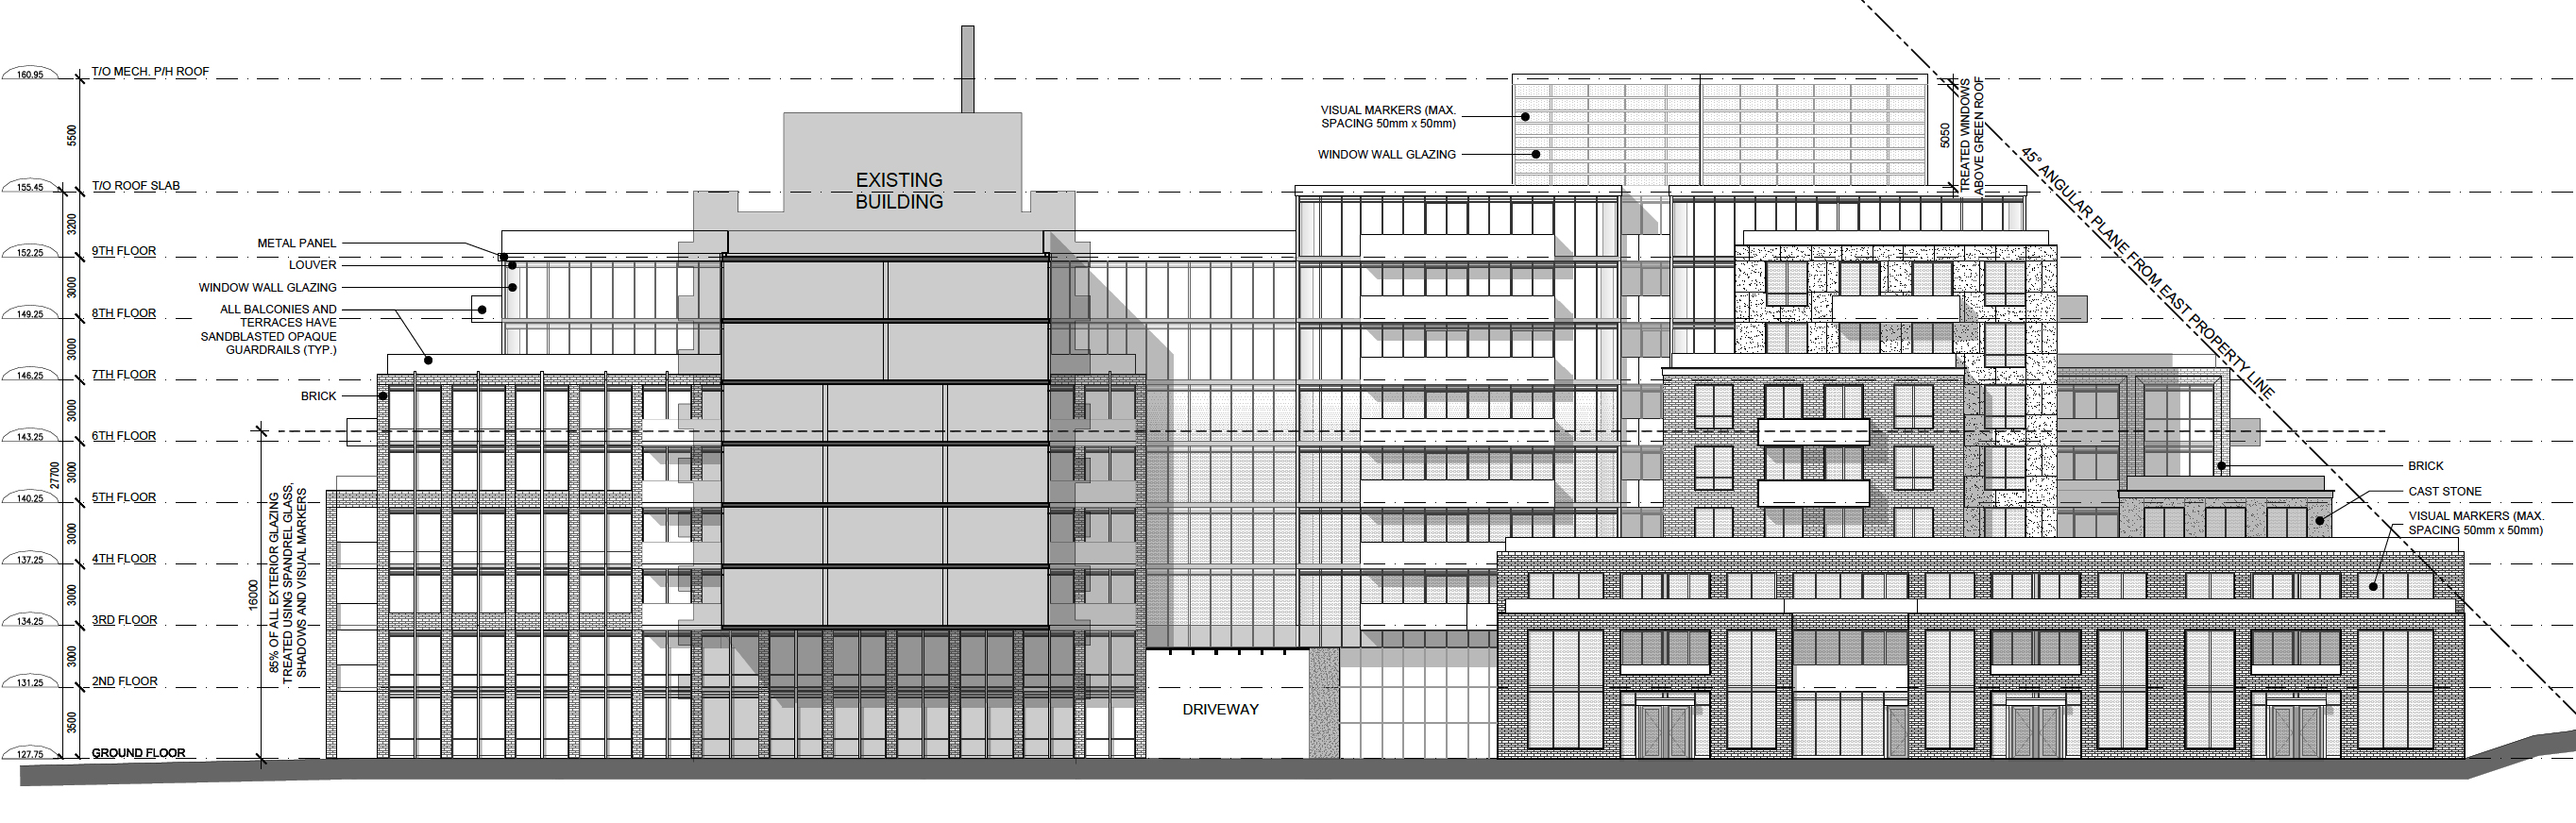 240 Markland Drive, Toronto, designed by IBI Group for Carttera Private Equities.